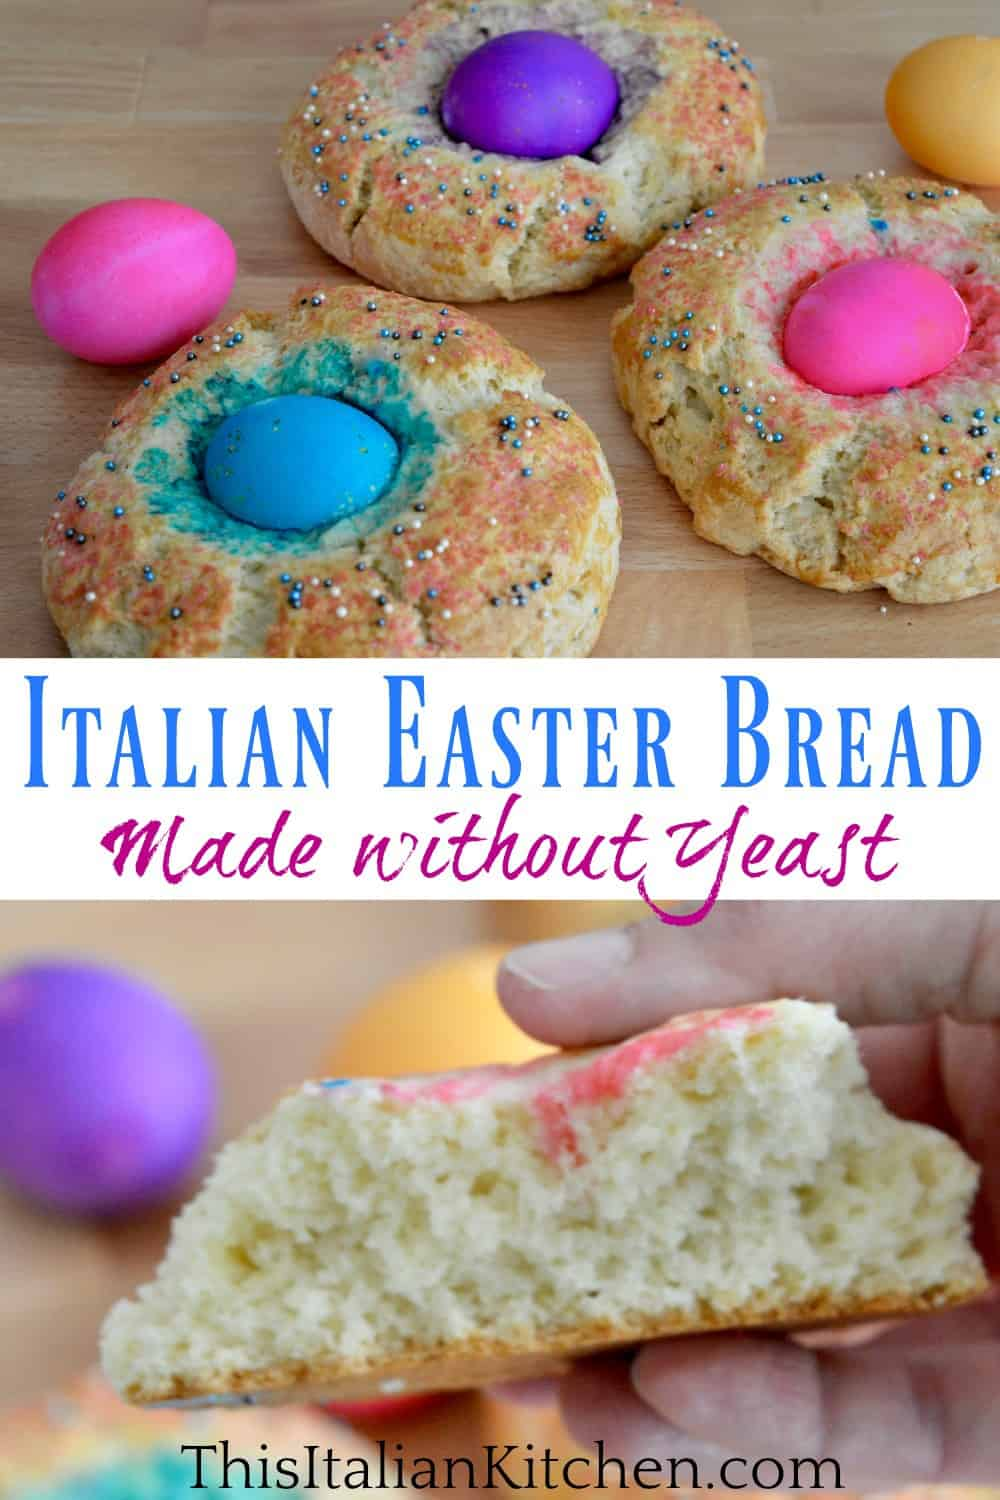 Italian easter bread without yeast.